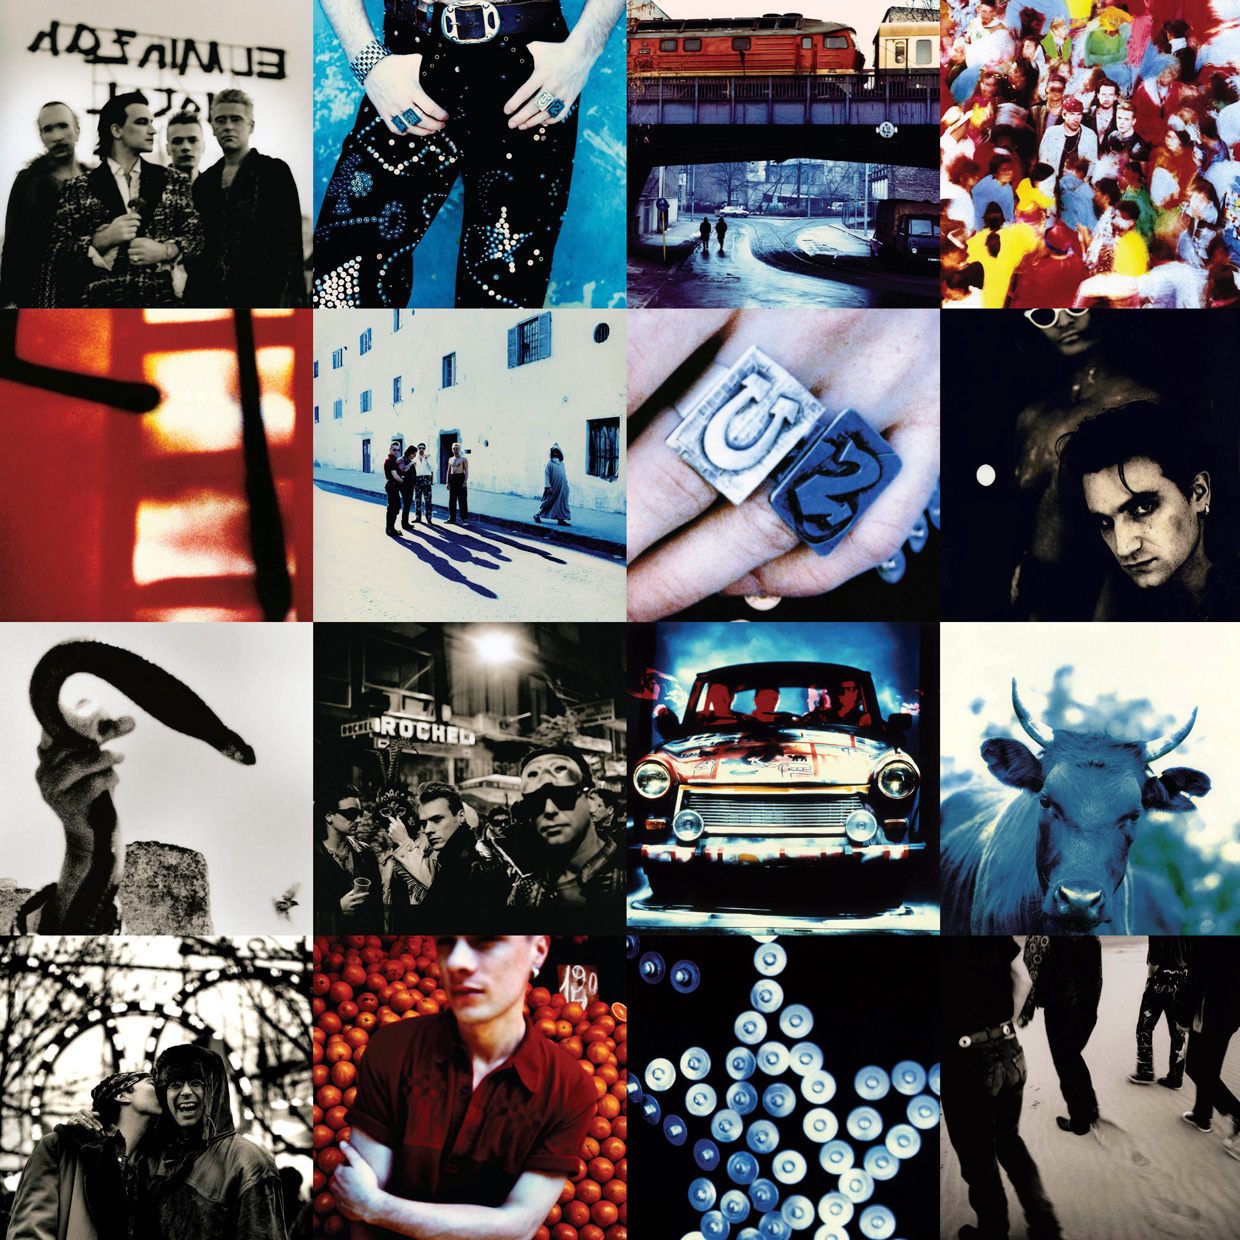 u2-achtung-baby-album-art-billboard-1240